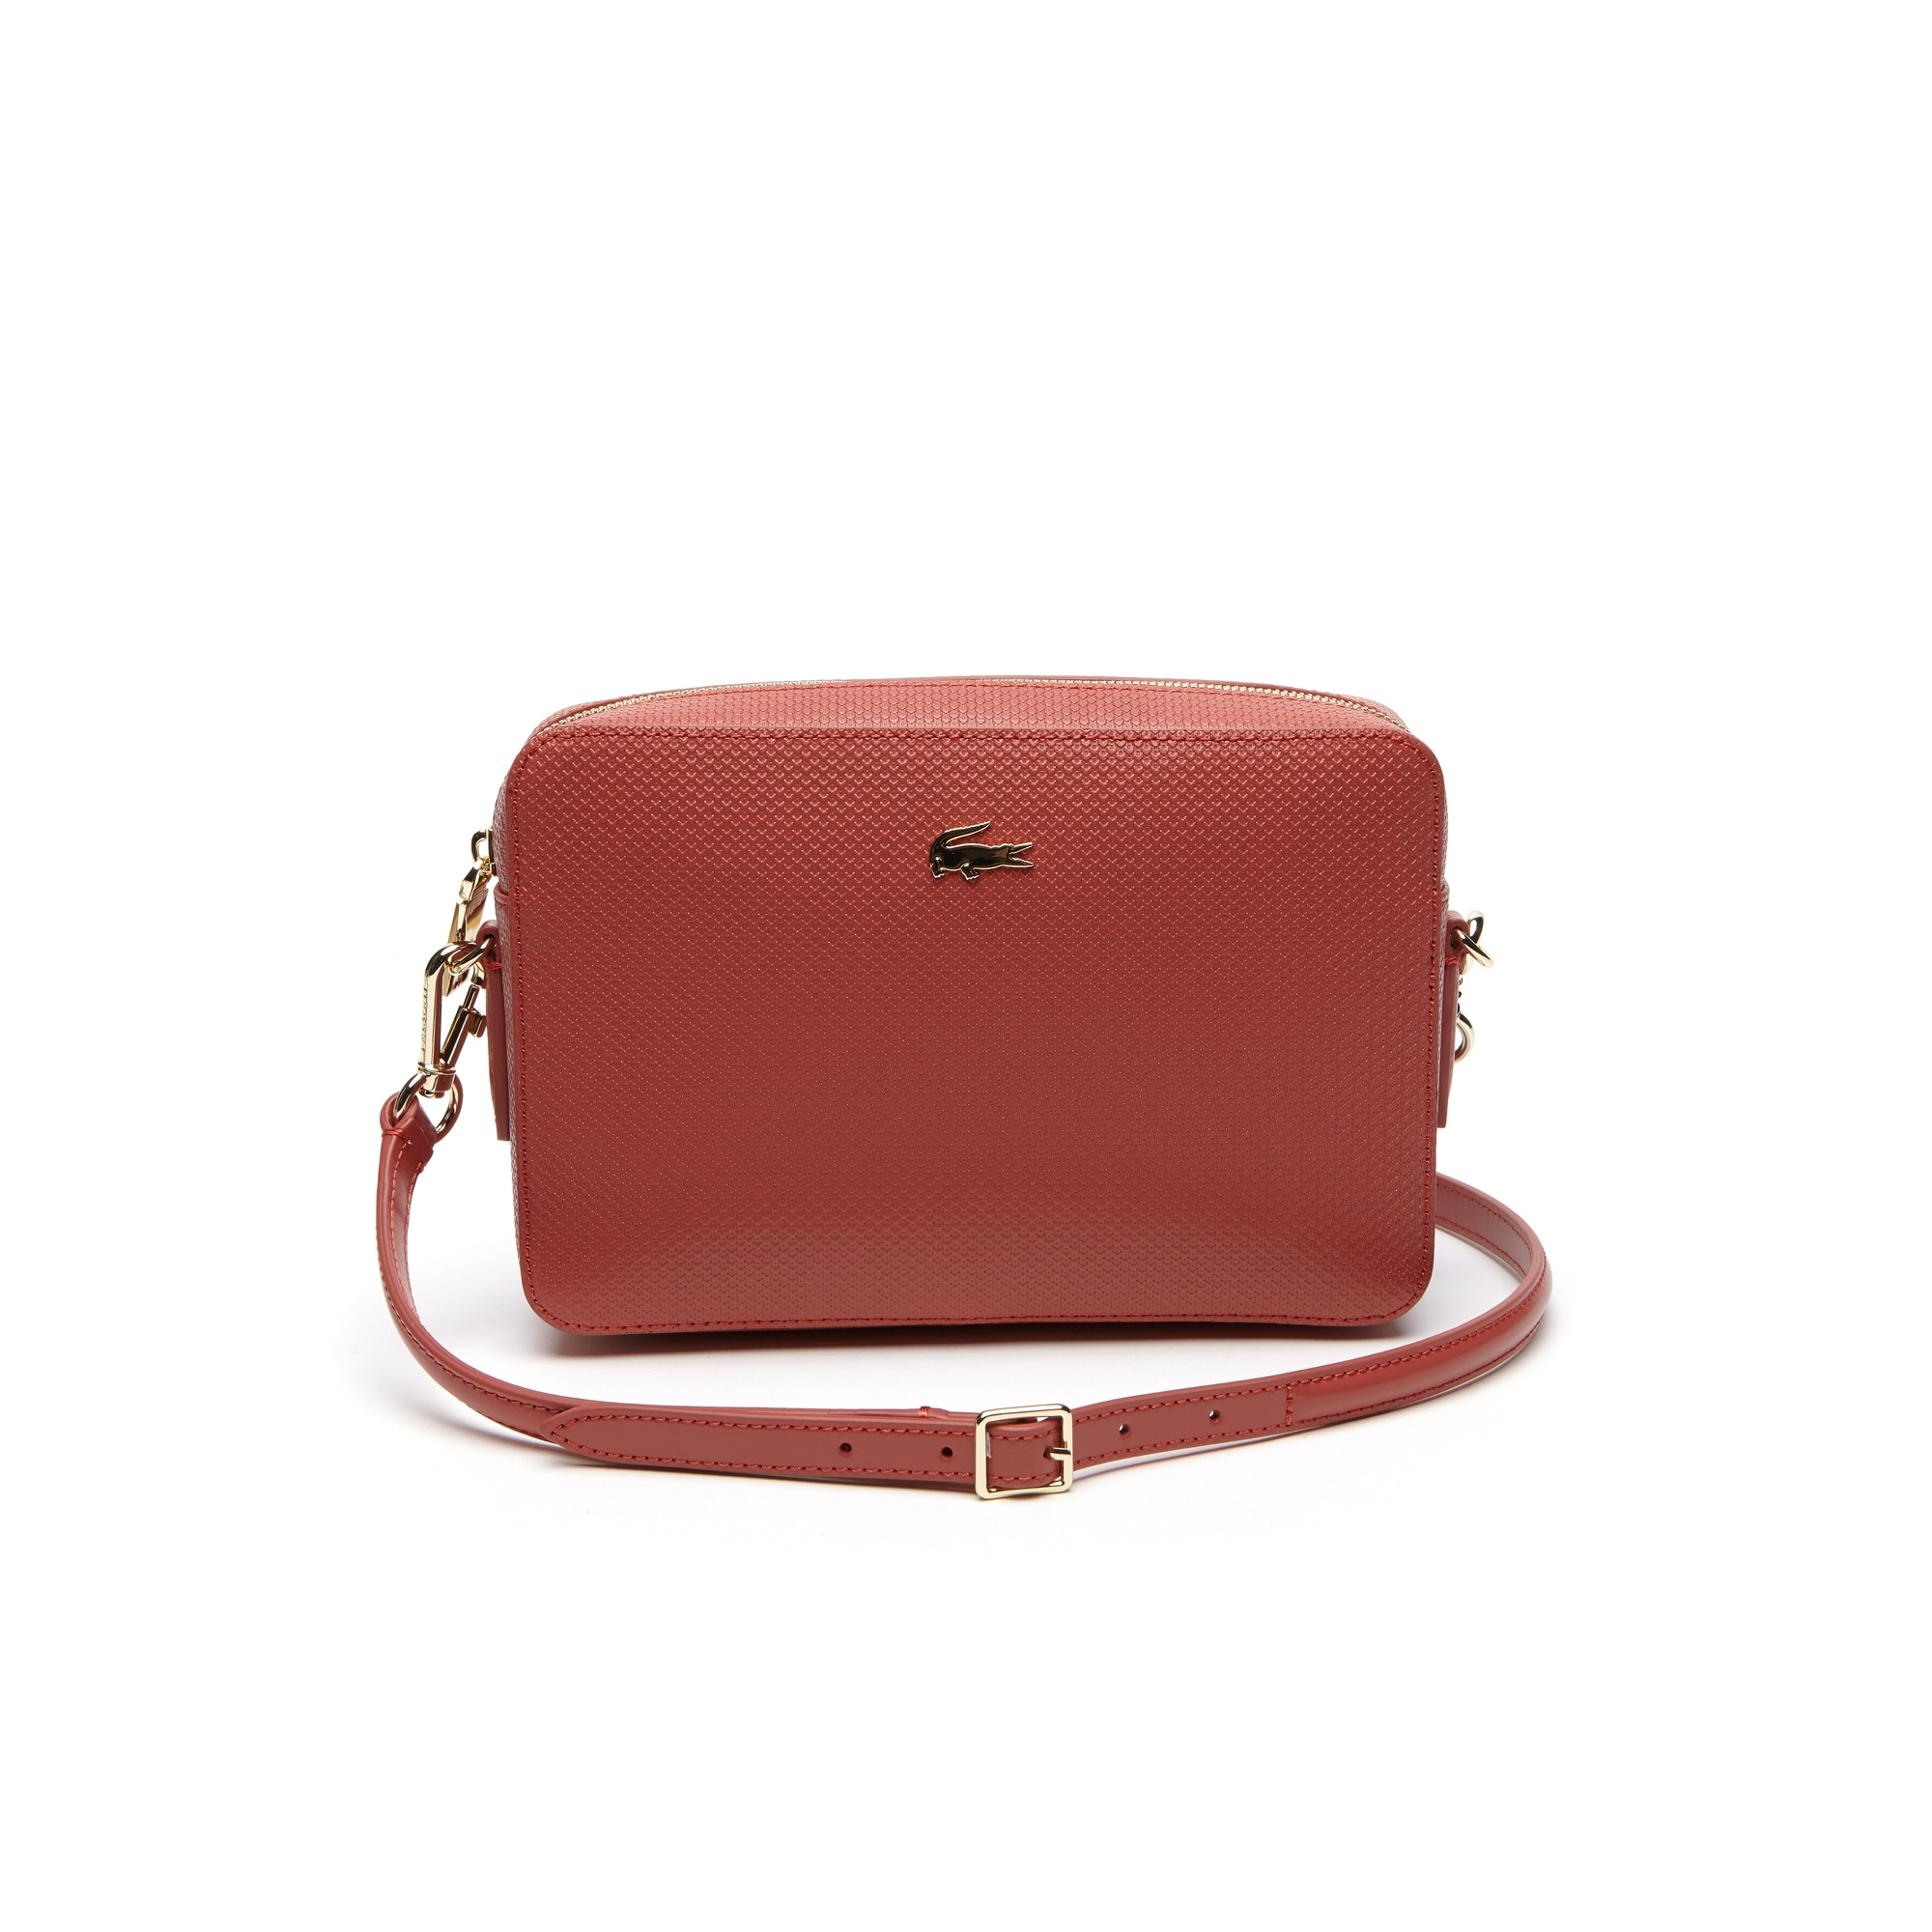 Women's Chantaco Piqué Leather Square Crossover Bag